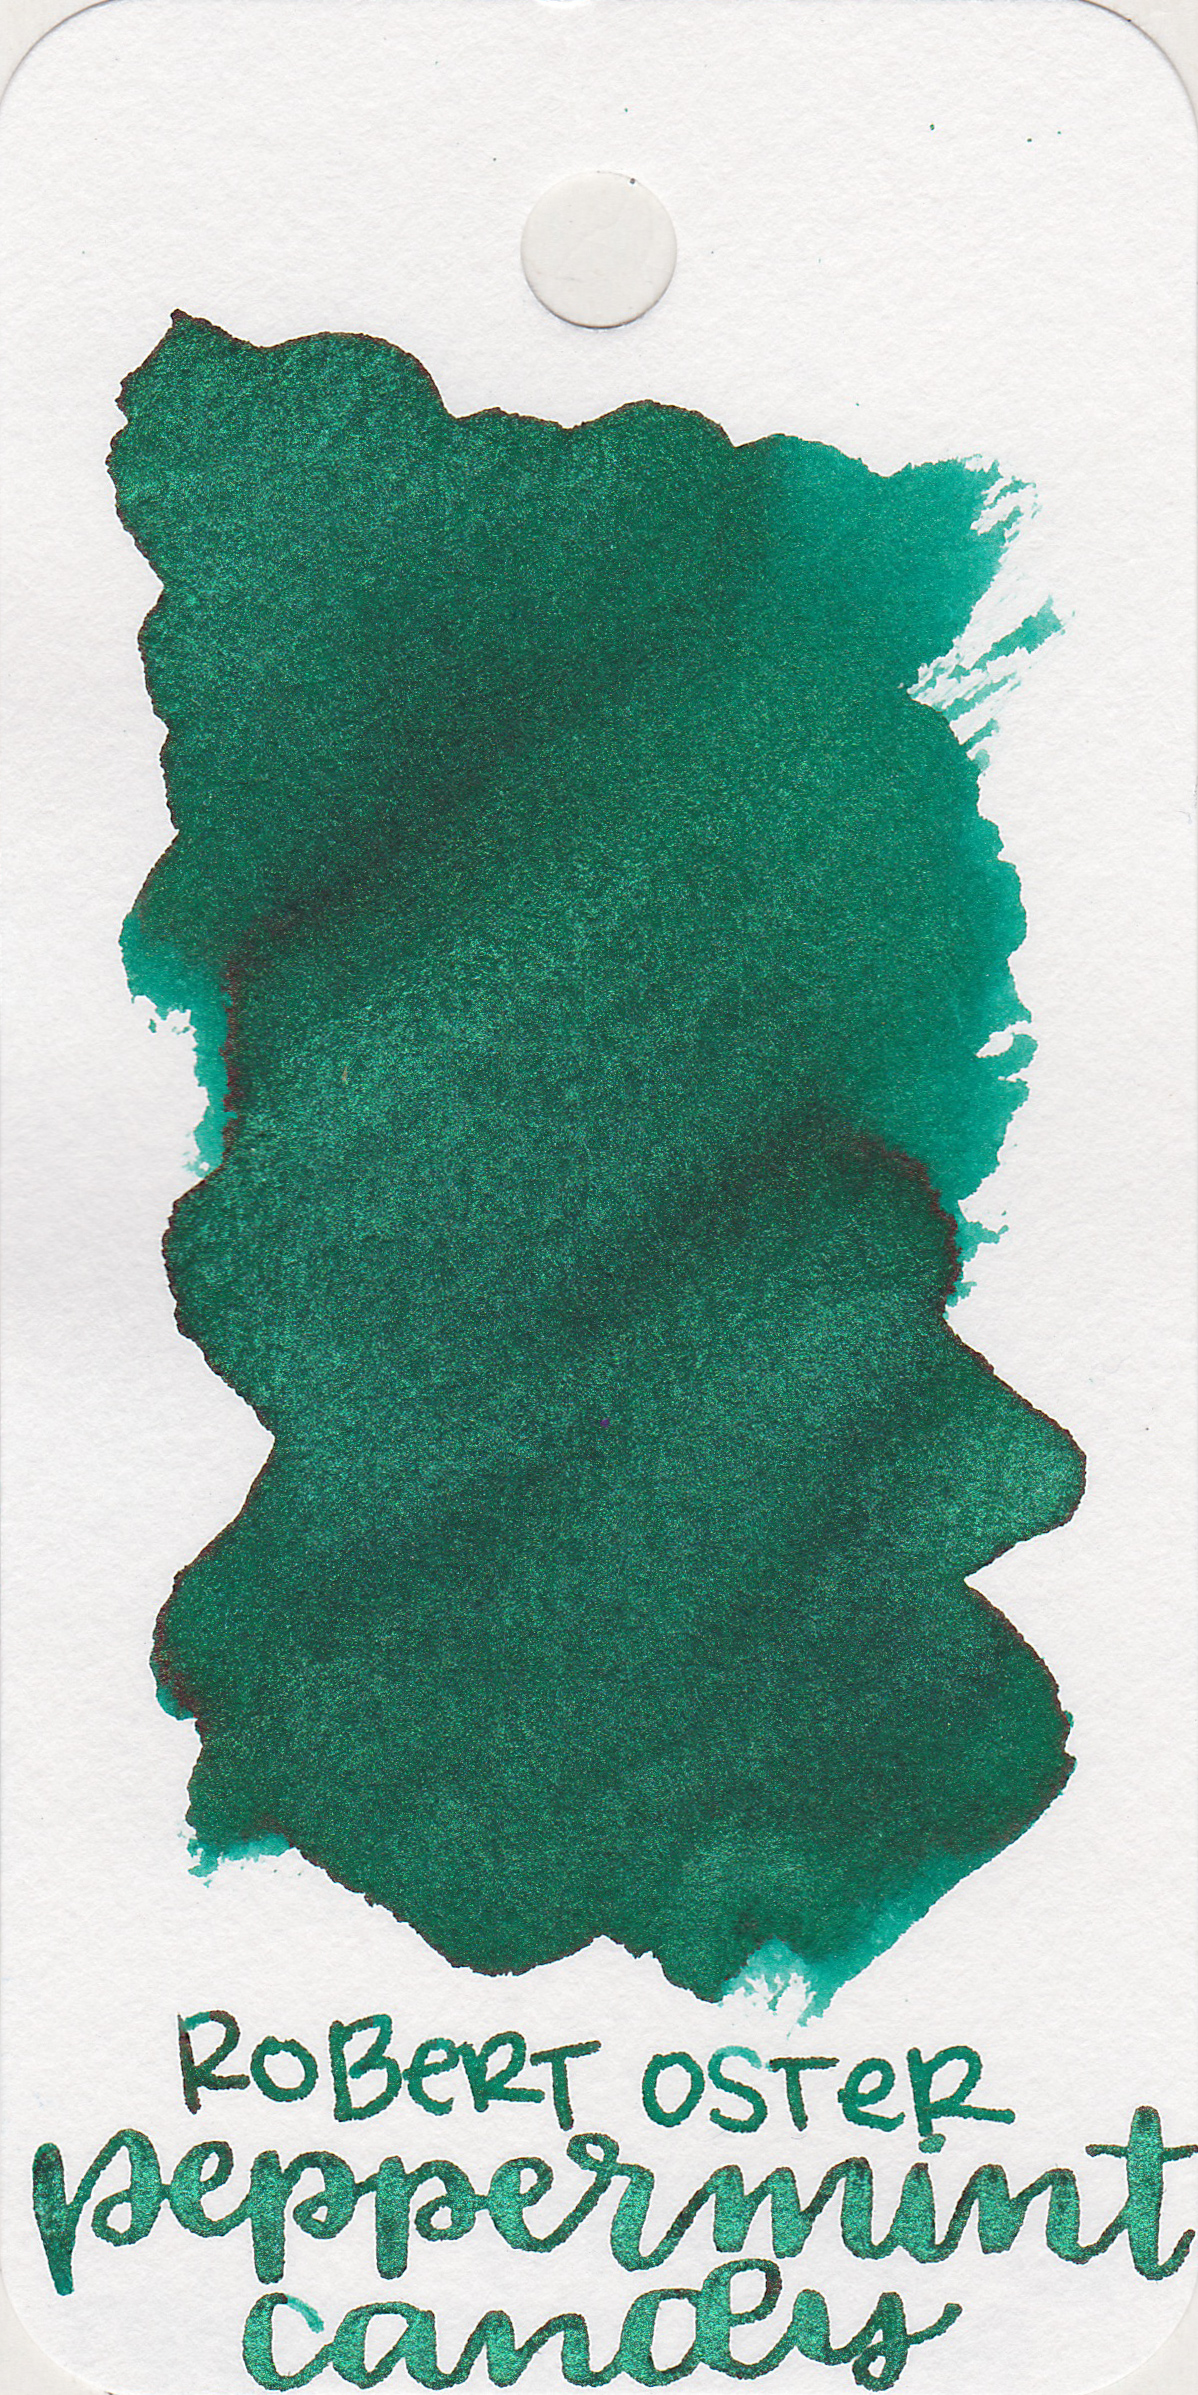 The color: - Peppermint Candy is Robert Oster Peppermint with green shimmer, at least that's my guess from the color and the name. Seasonally, this is perfect for Christmas.